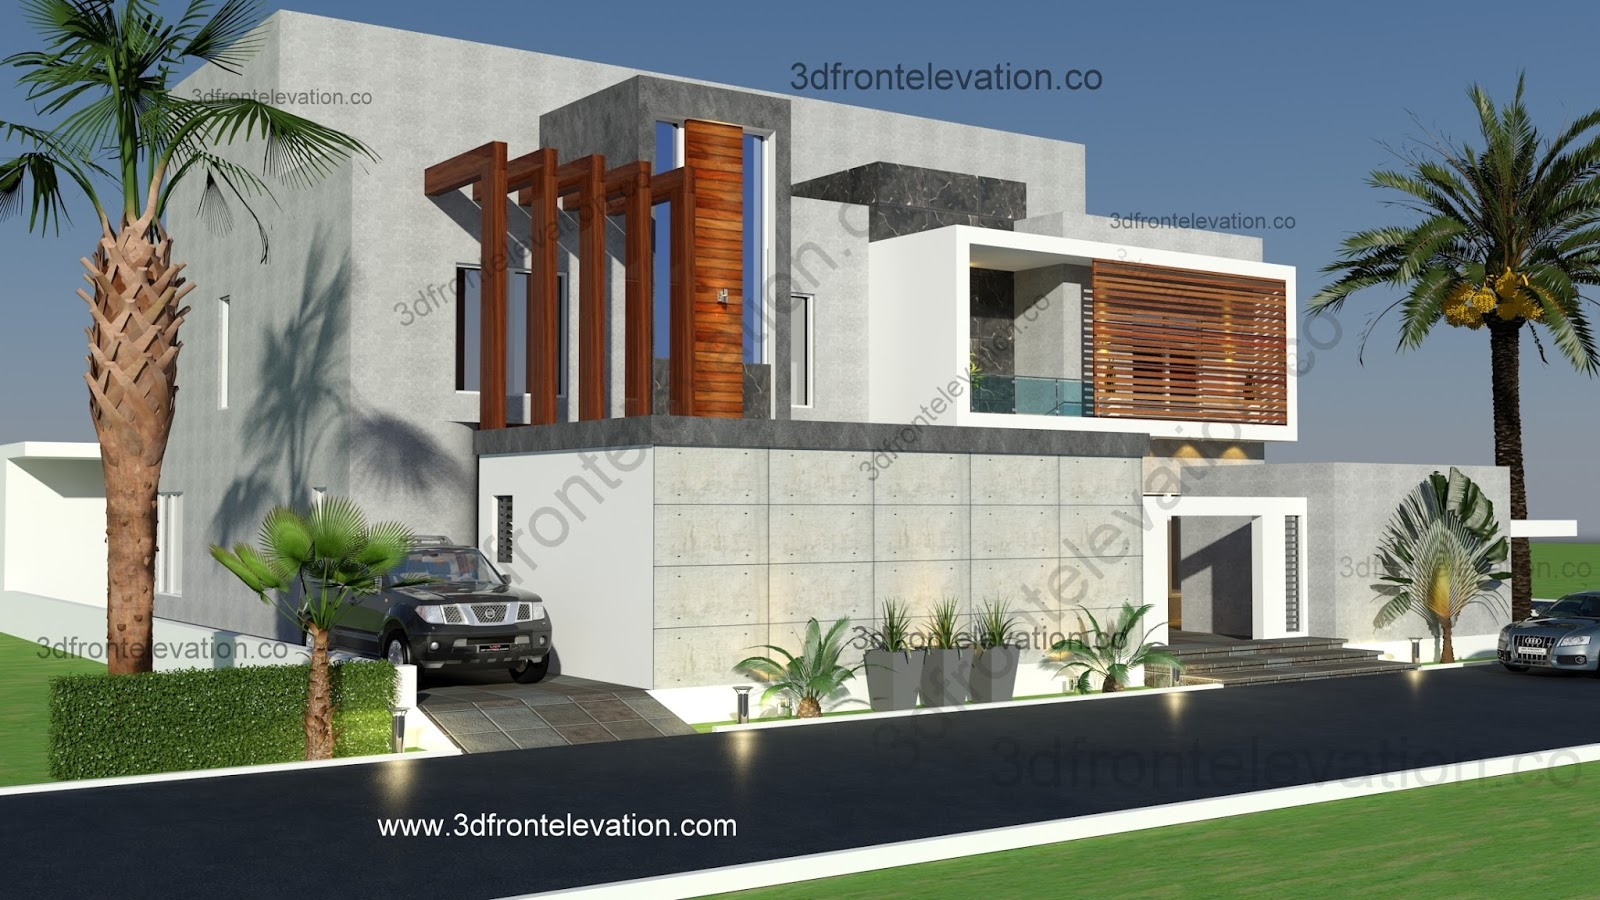 3d Front Elevation Of Houses In Dubai : D front elevation saudi oman muscat qatar dubai